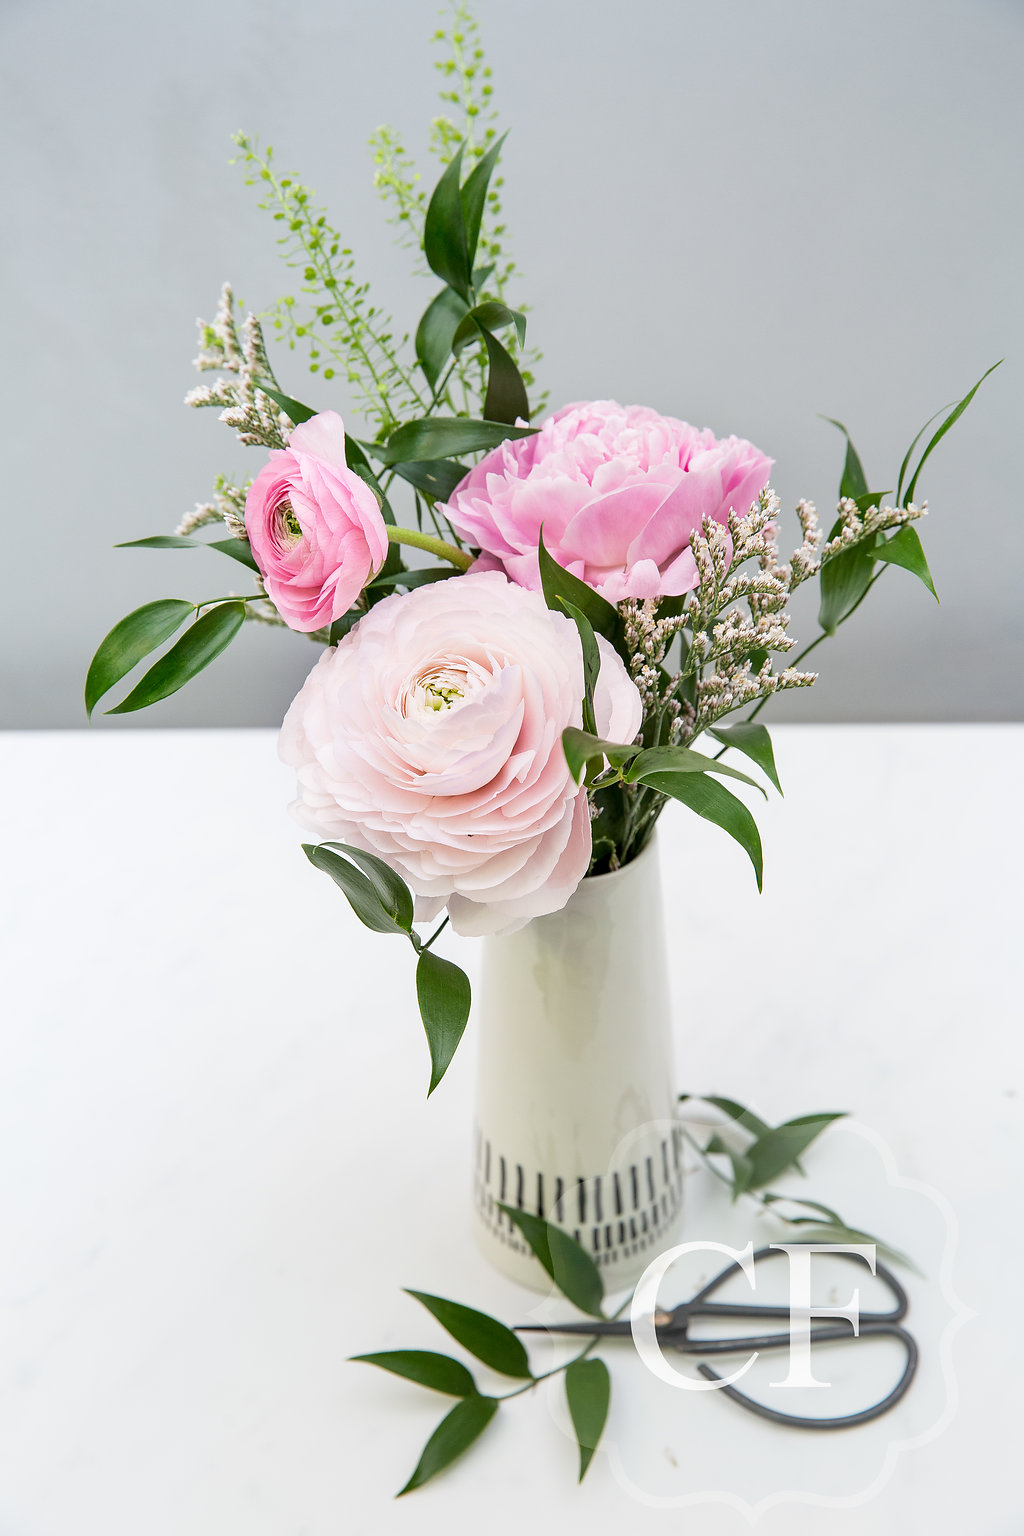 A Simple Bud Vase - A small but sincere gift of thanks